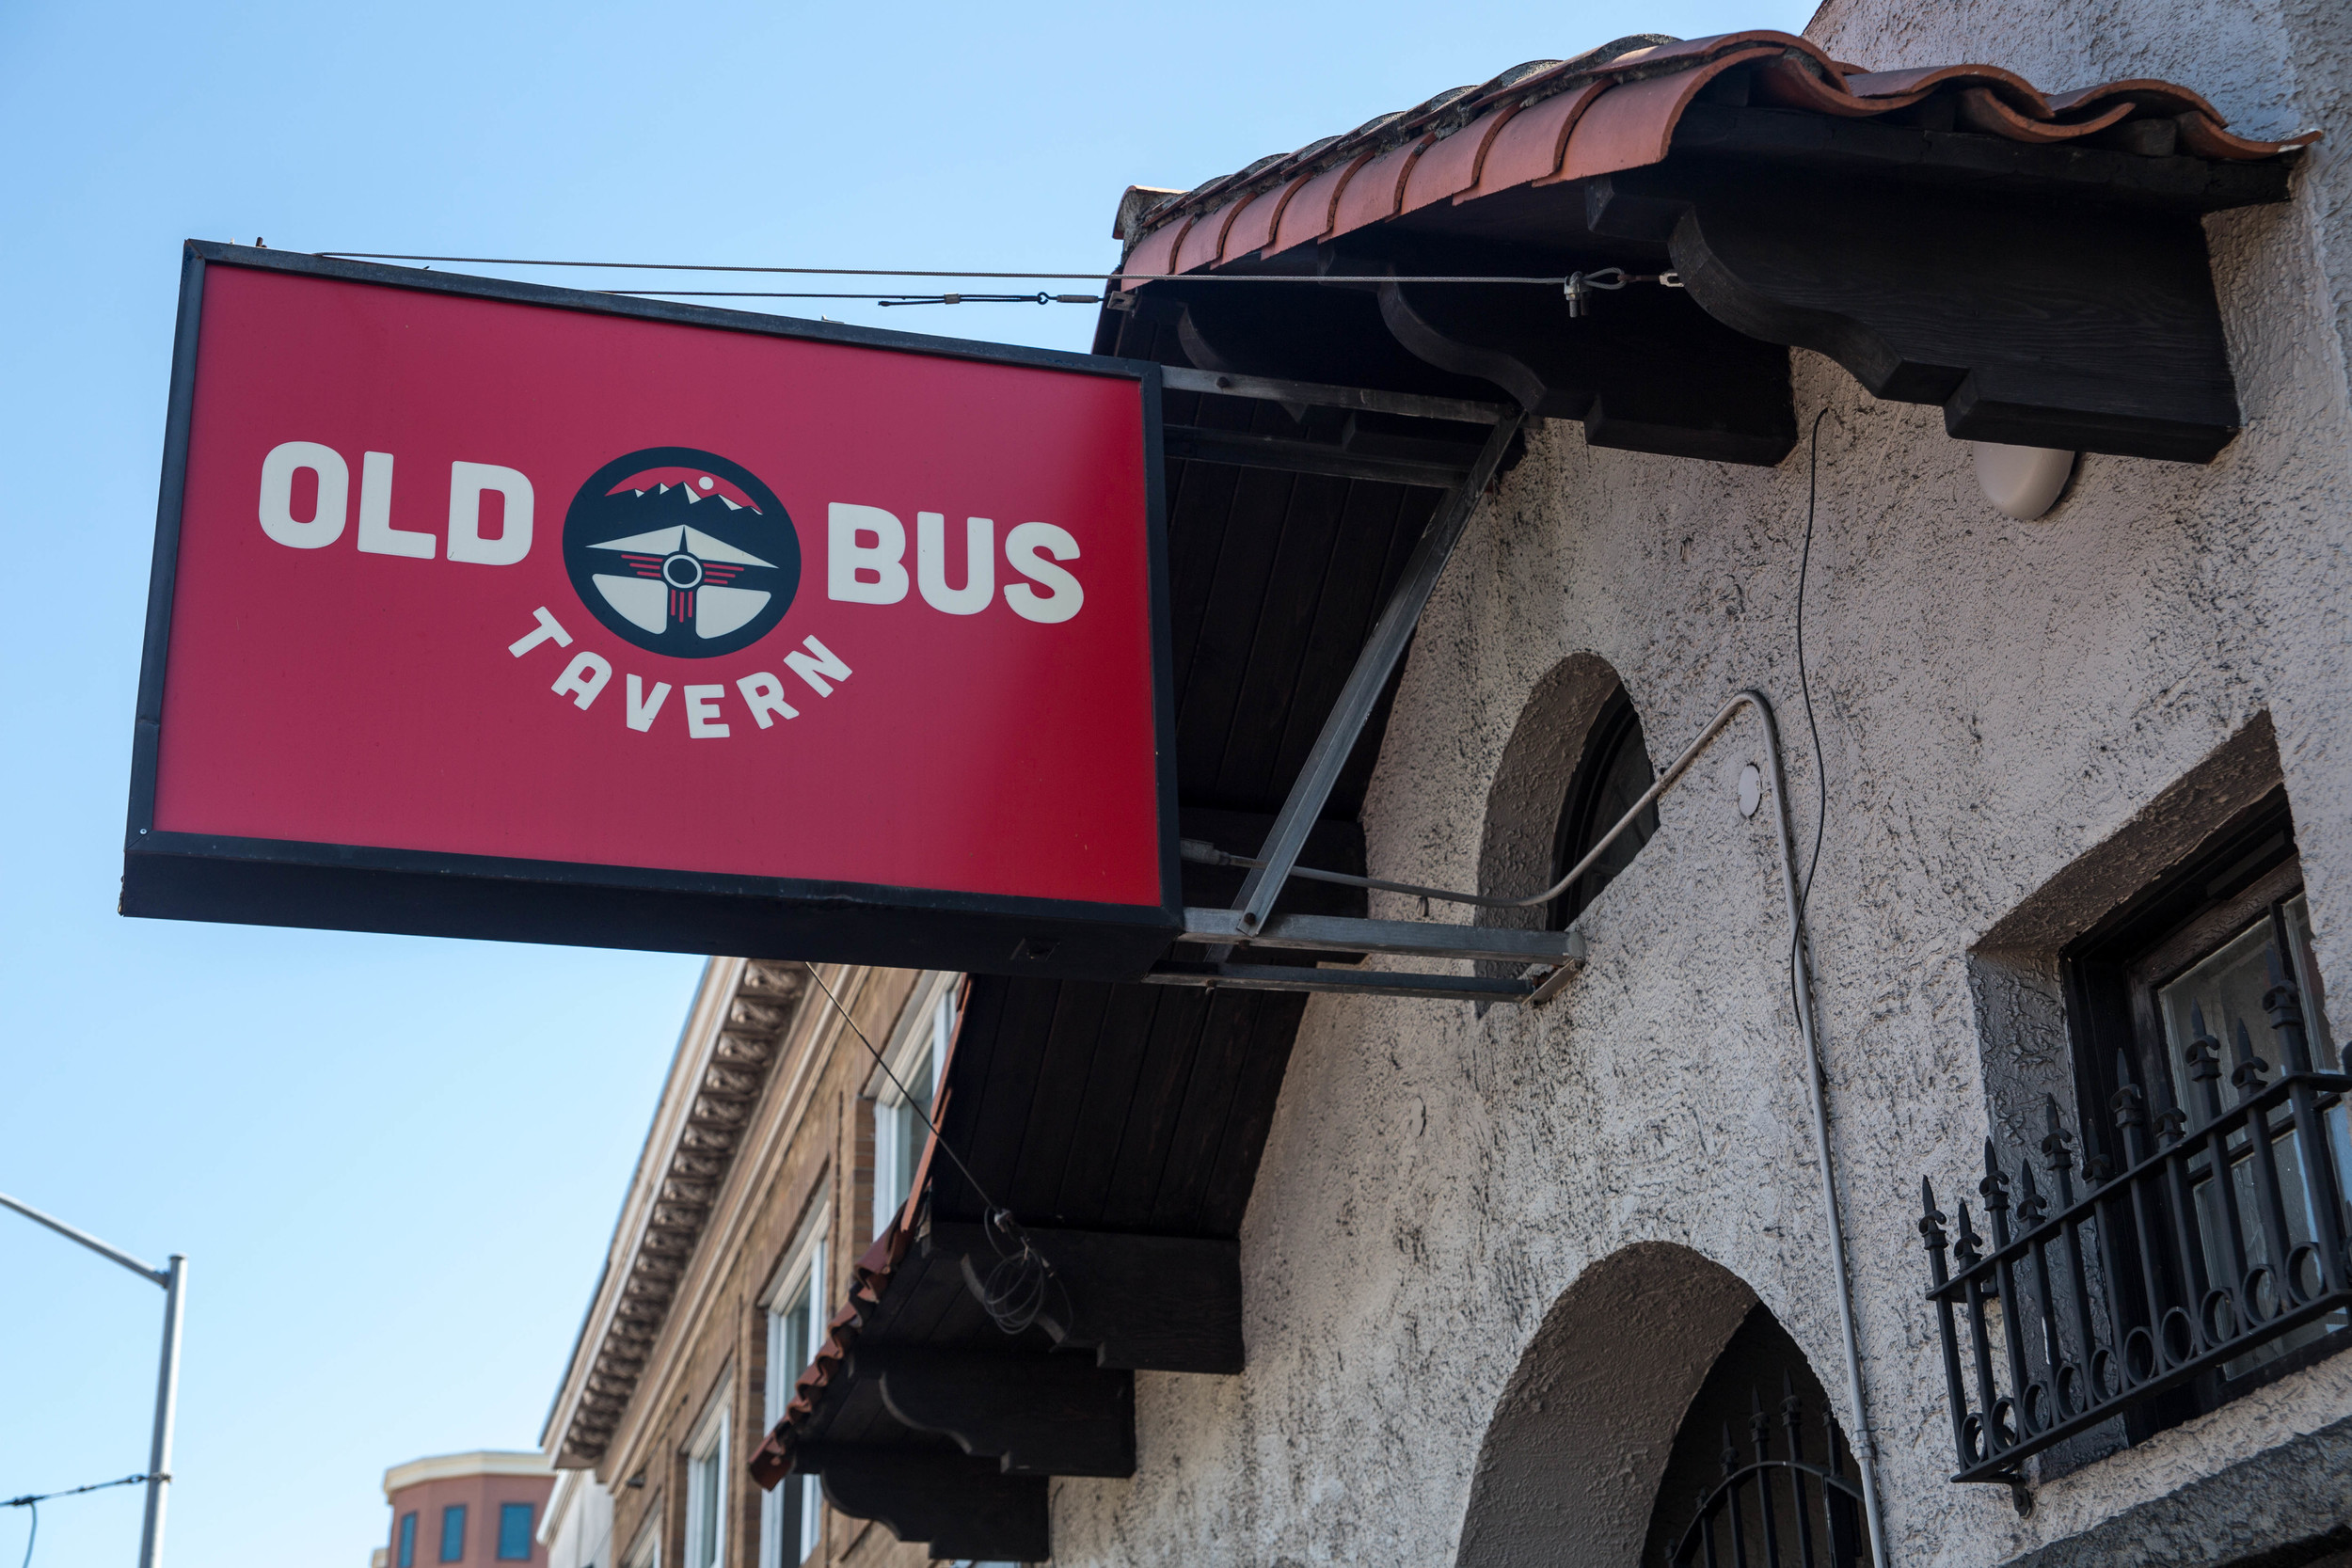 OLD BUS TAVERN  - 3193 MISSION STREET - 415.843.1938